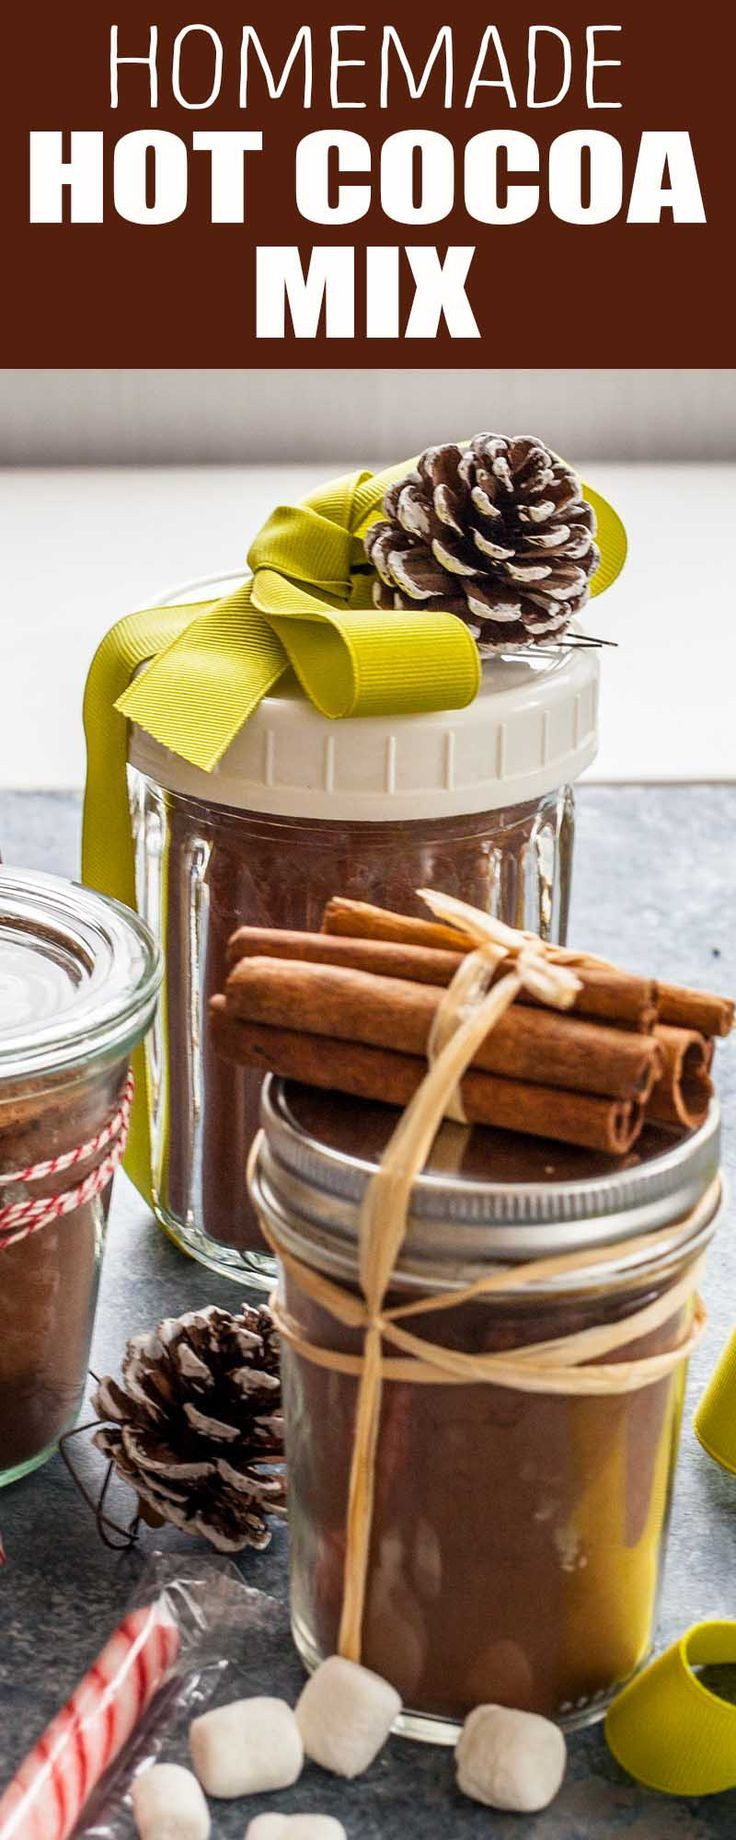 Best ideas about DIY Hot Cocoa Mix . Save or Pin Best 25 Hot cocoa mixes ideas on Pinterest Now.